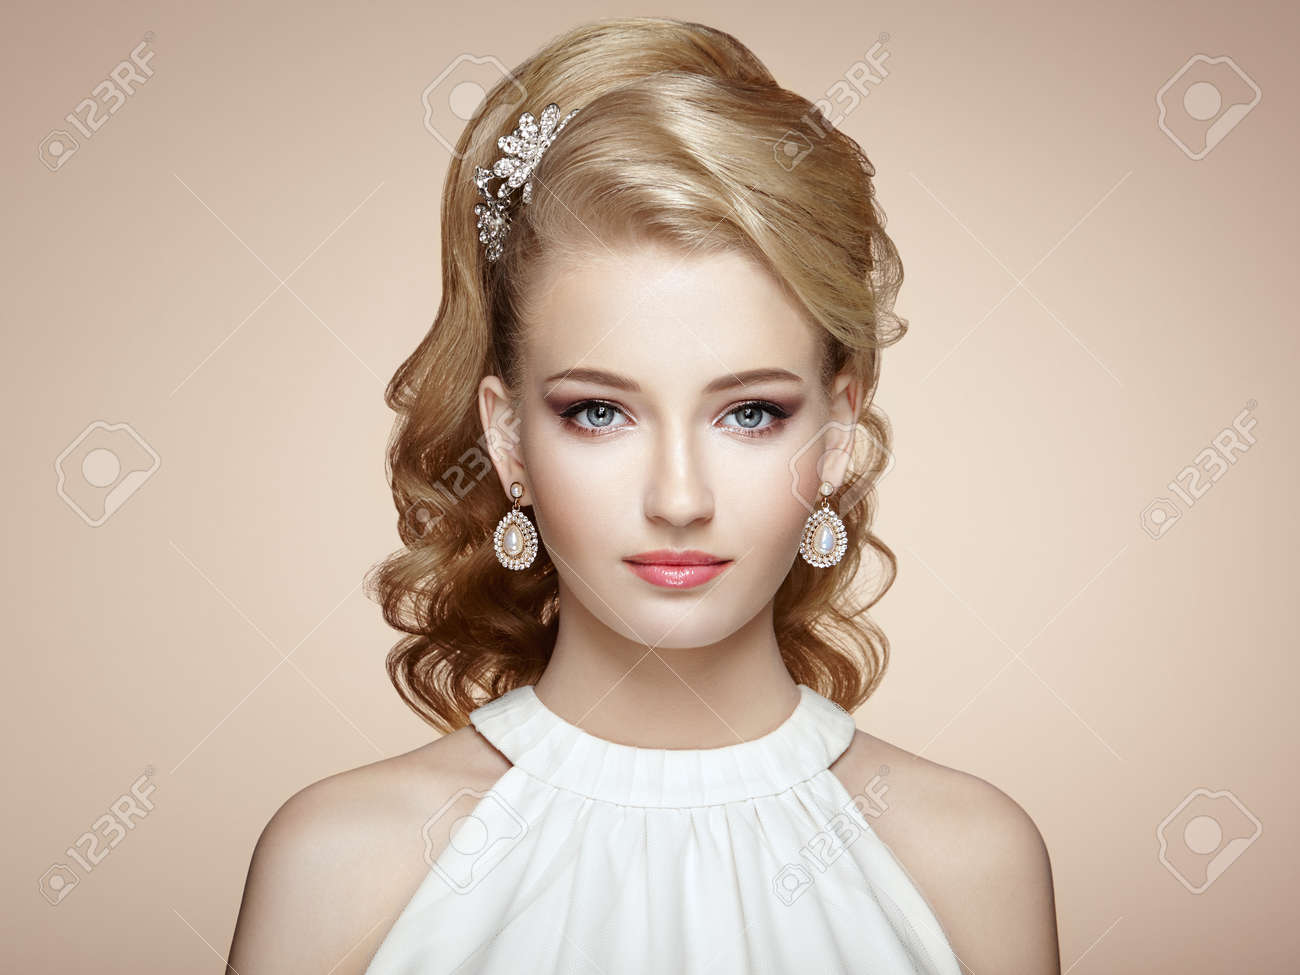 Fashion portrait of young beautiful woman with elegant hairstyle - 62369531